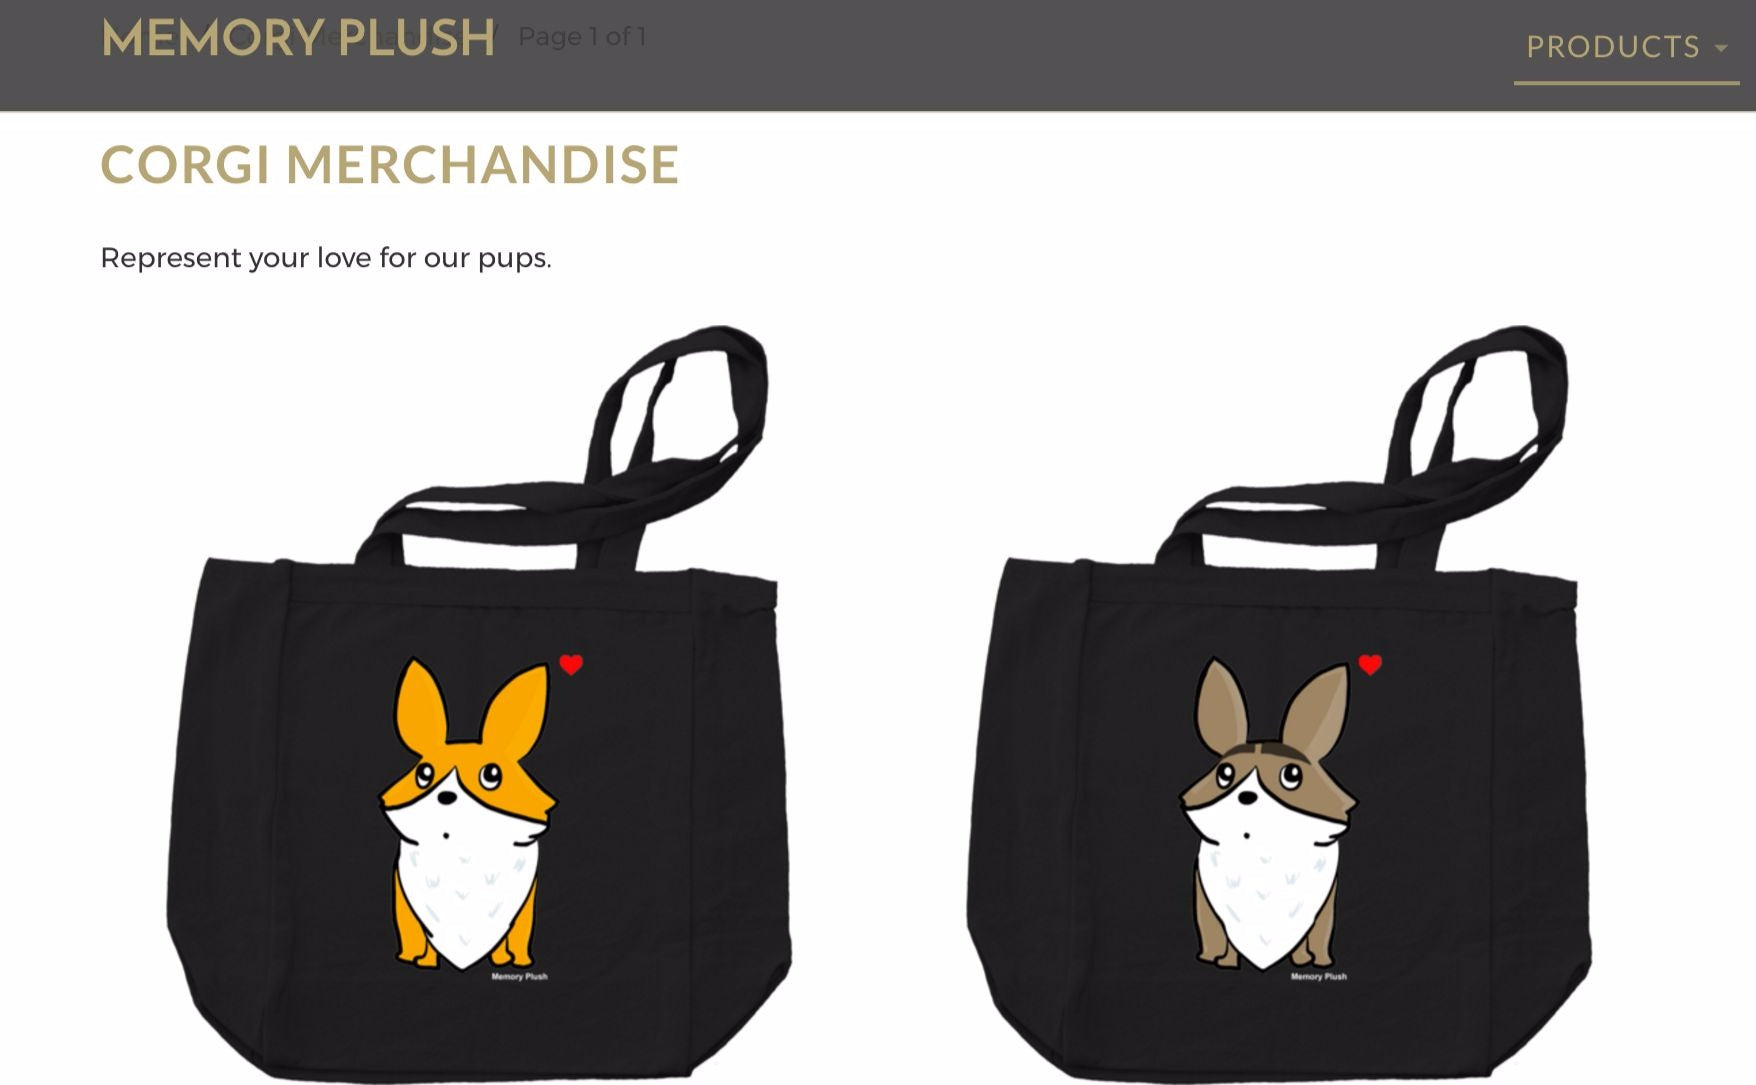 Website Makeover and New Corgi Merchandise